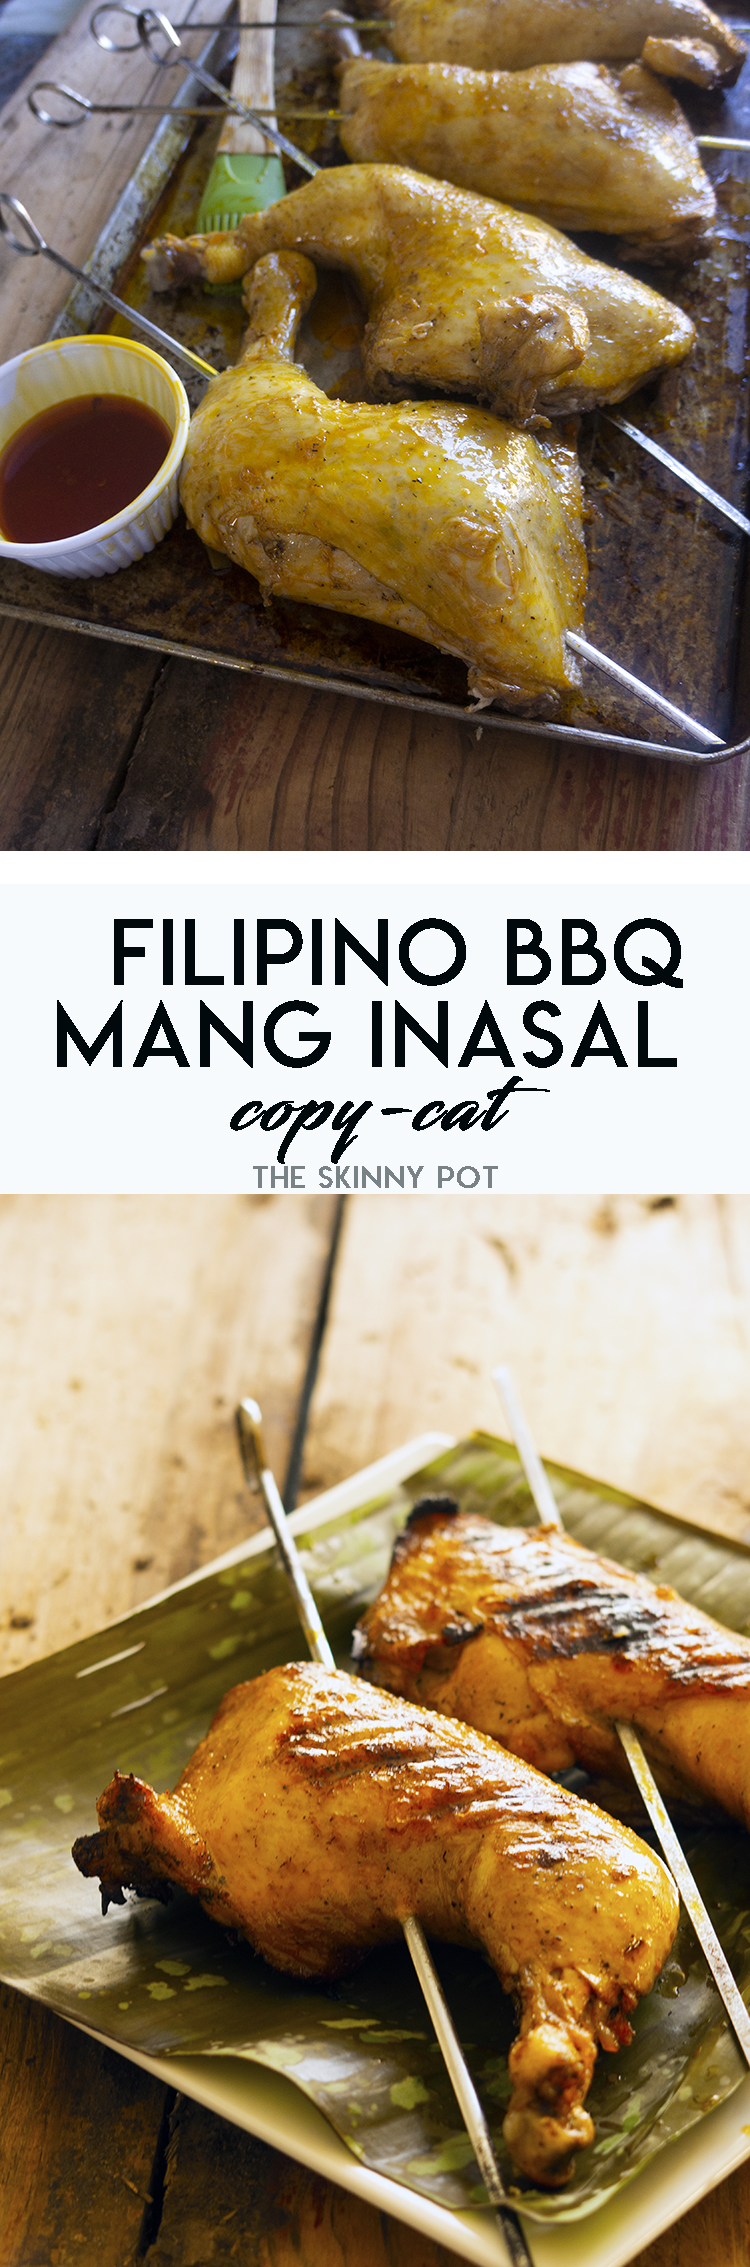 FILIPINO CHICKEN BARBECUE soak in lemon grass,ginger,garlic and onion marinade,this comes close in taste with the FILIPINO MANG INASAL